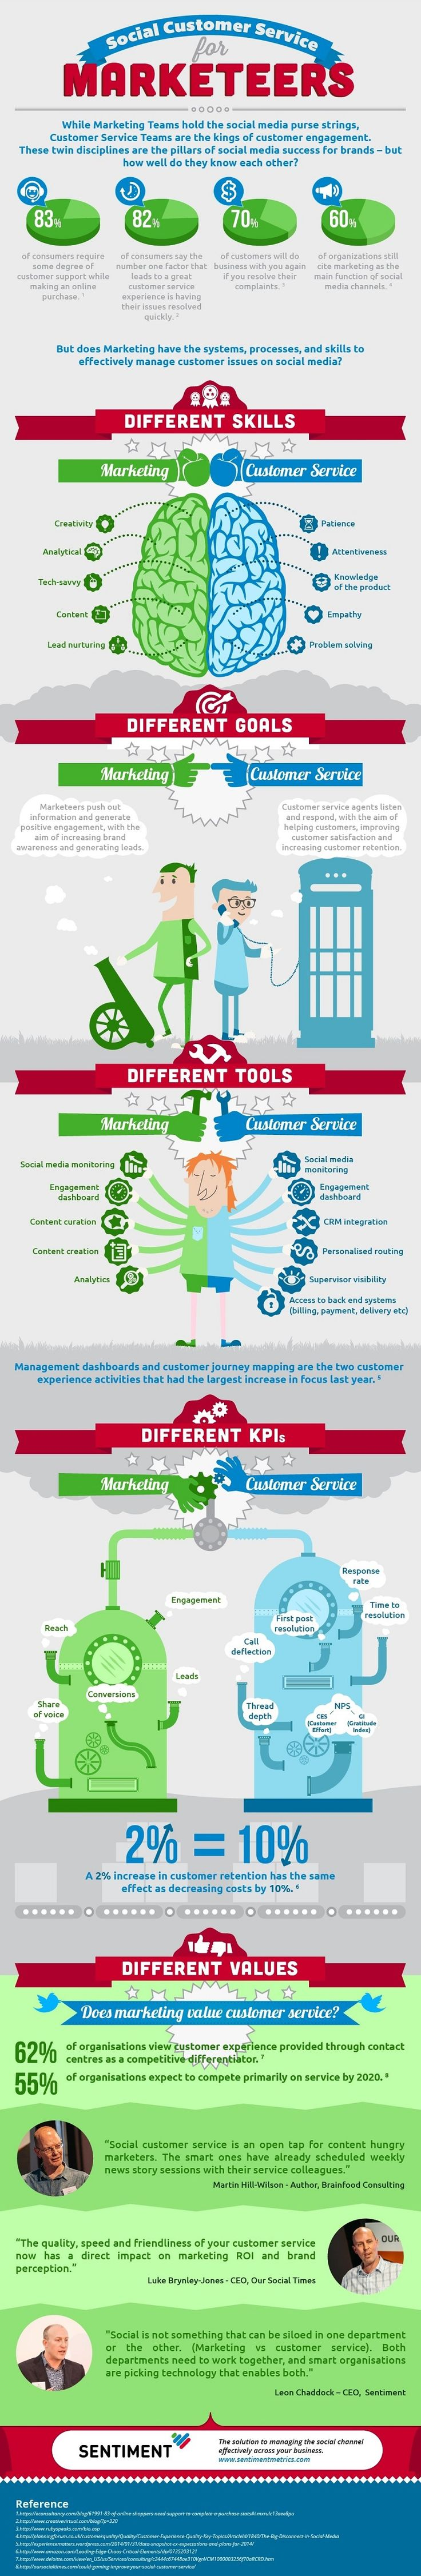 Customer Relationships - How Marketing and Customer Service Approach Customer Engagement #Infographic #infografía